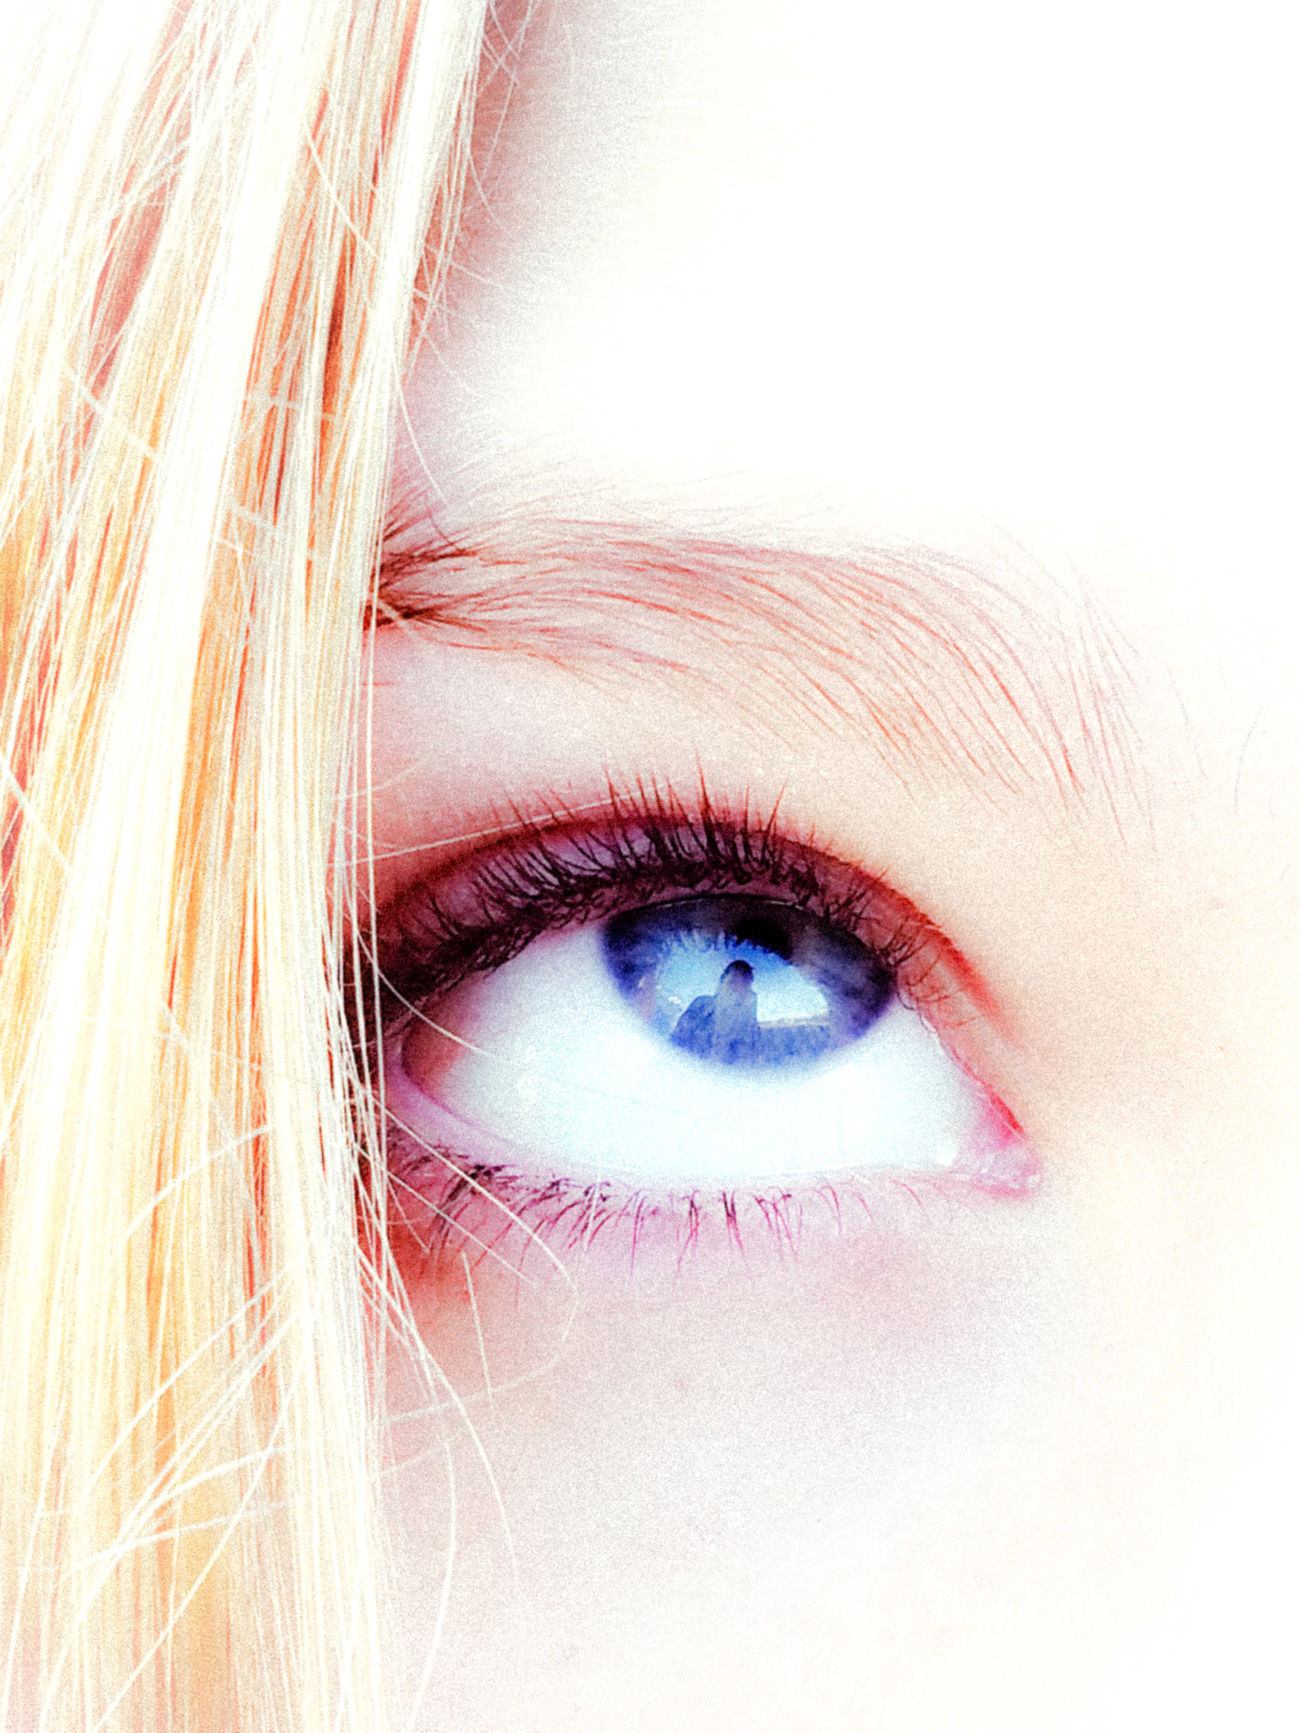 Love ♥ Eyes Blueeyesforever Focal Point Reflection Photographer In The Shot Girl Bright_and_bold Blue Blue Eyes Blue Eyed Girl Cerulean Blue AndroidPhotography Perspective Photography Eyem Gallery Cellphone Photography Android EyeEm Best Shots Cell Phone Photography Eyeem Market